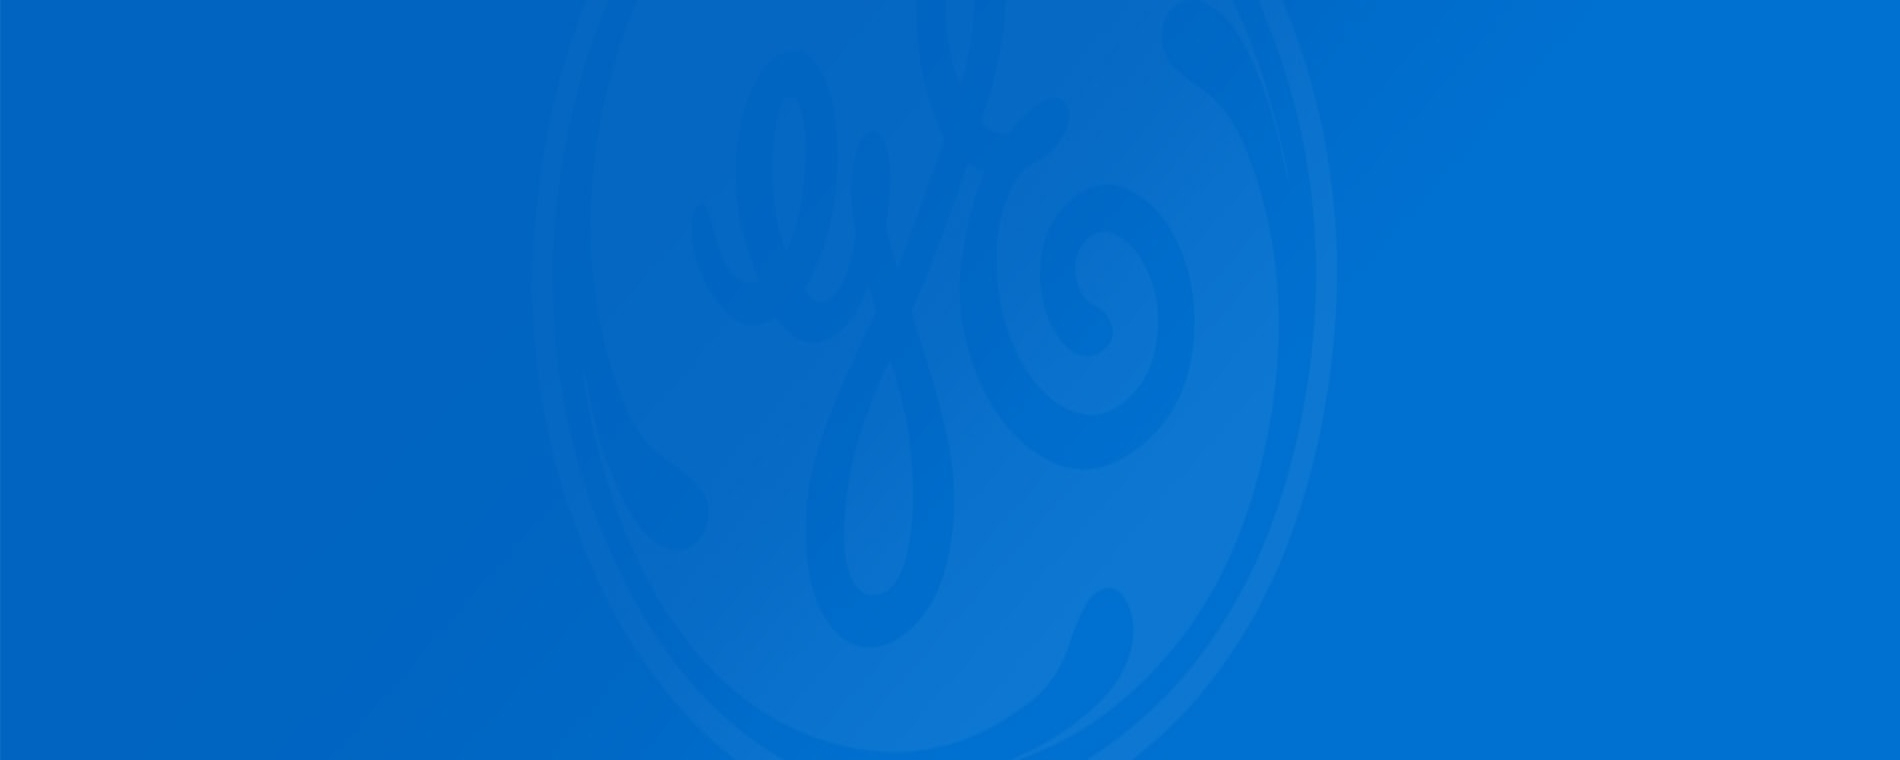 Career Opportunities at GE | GE Careers